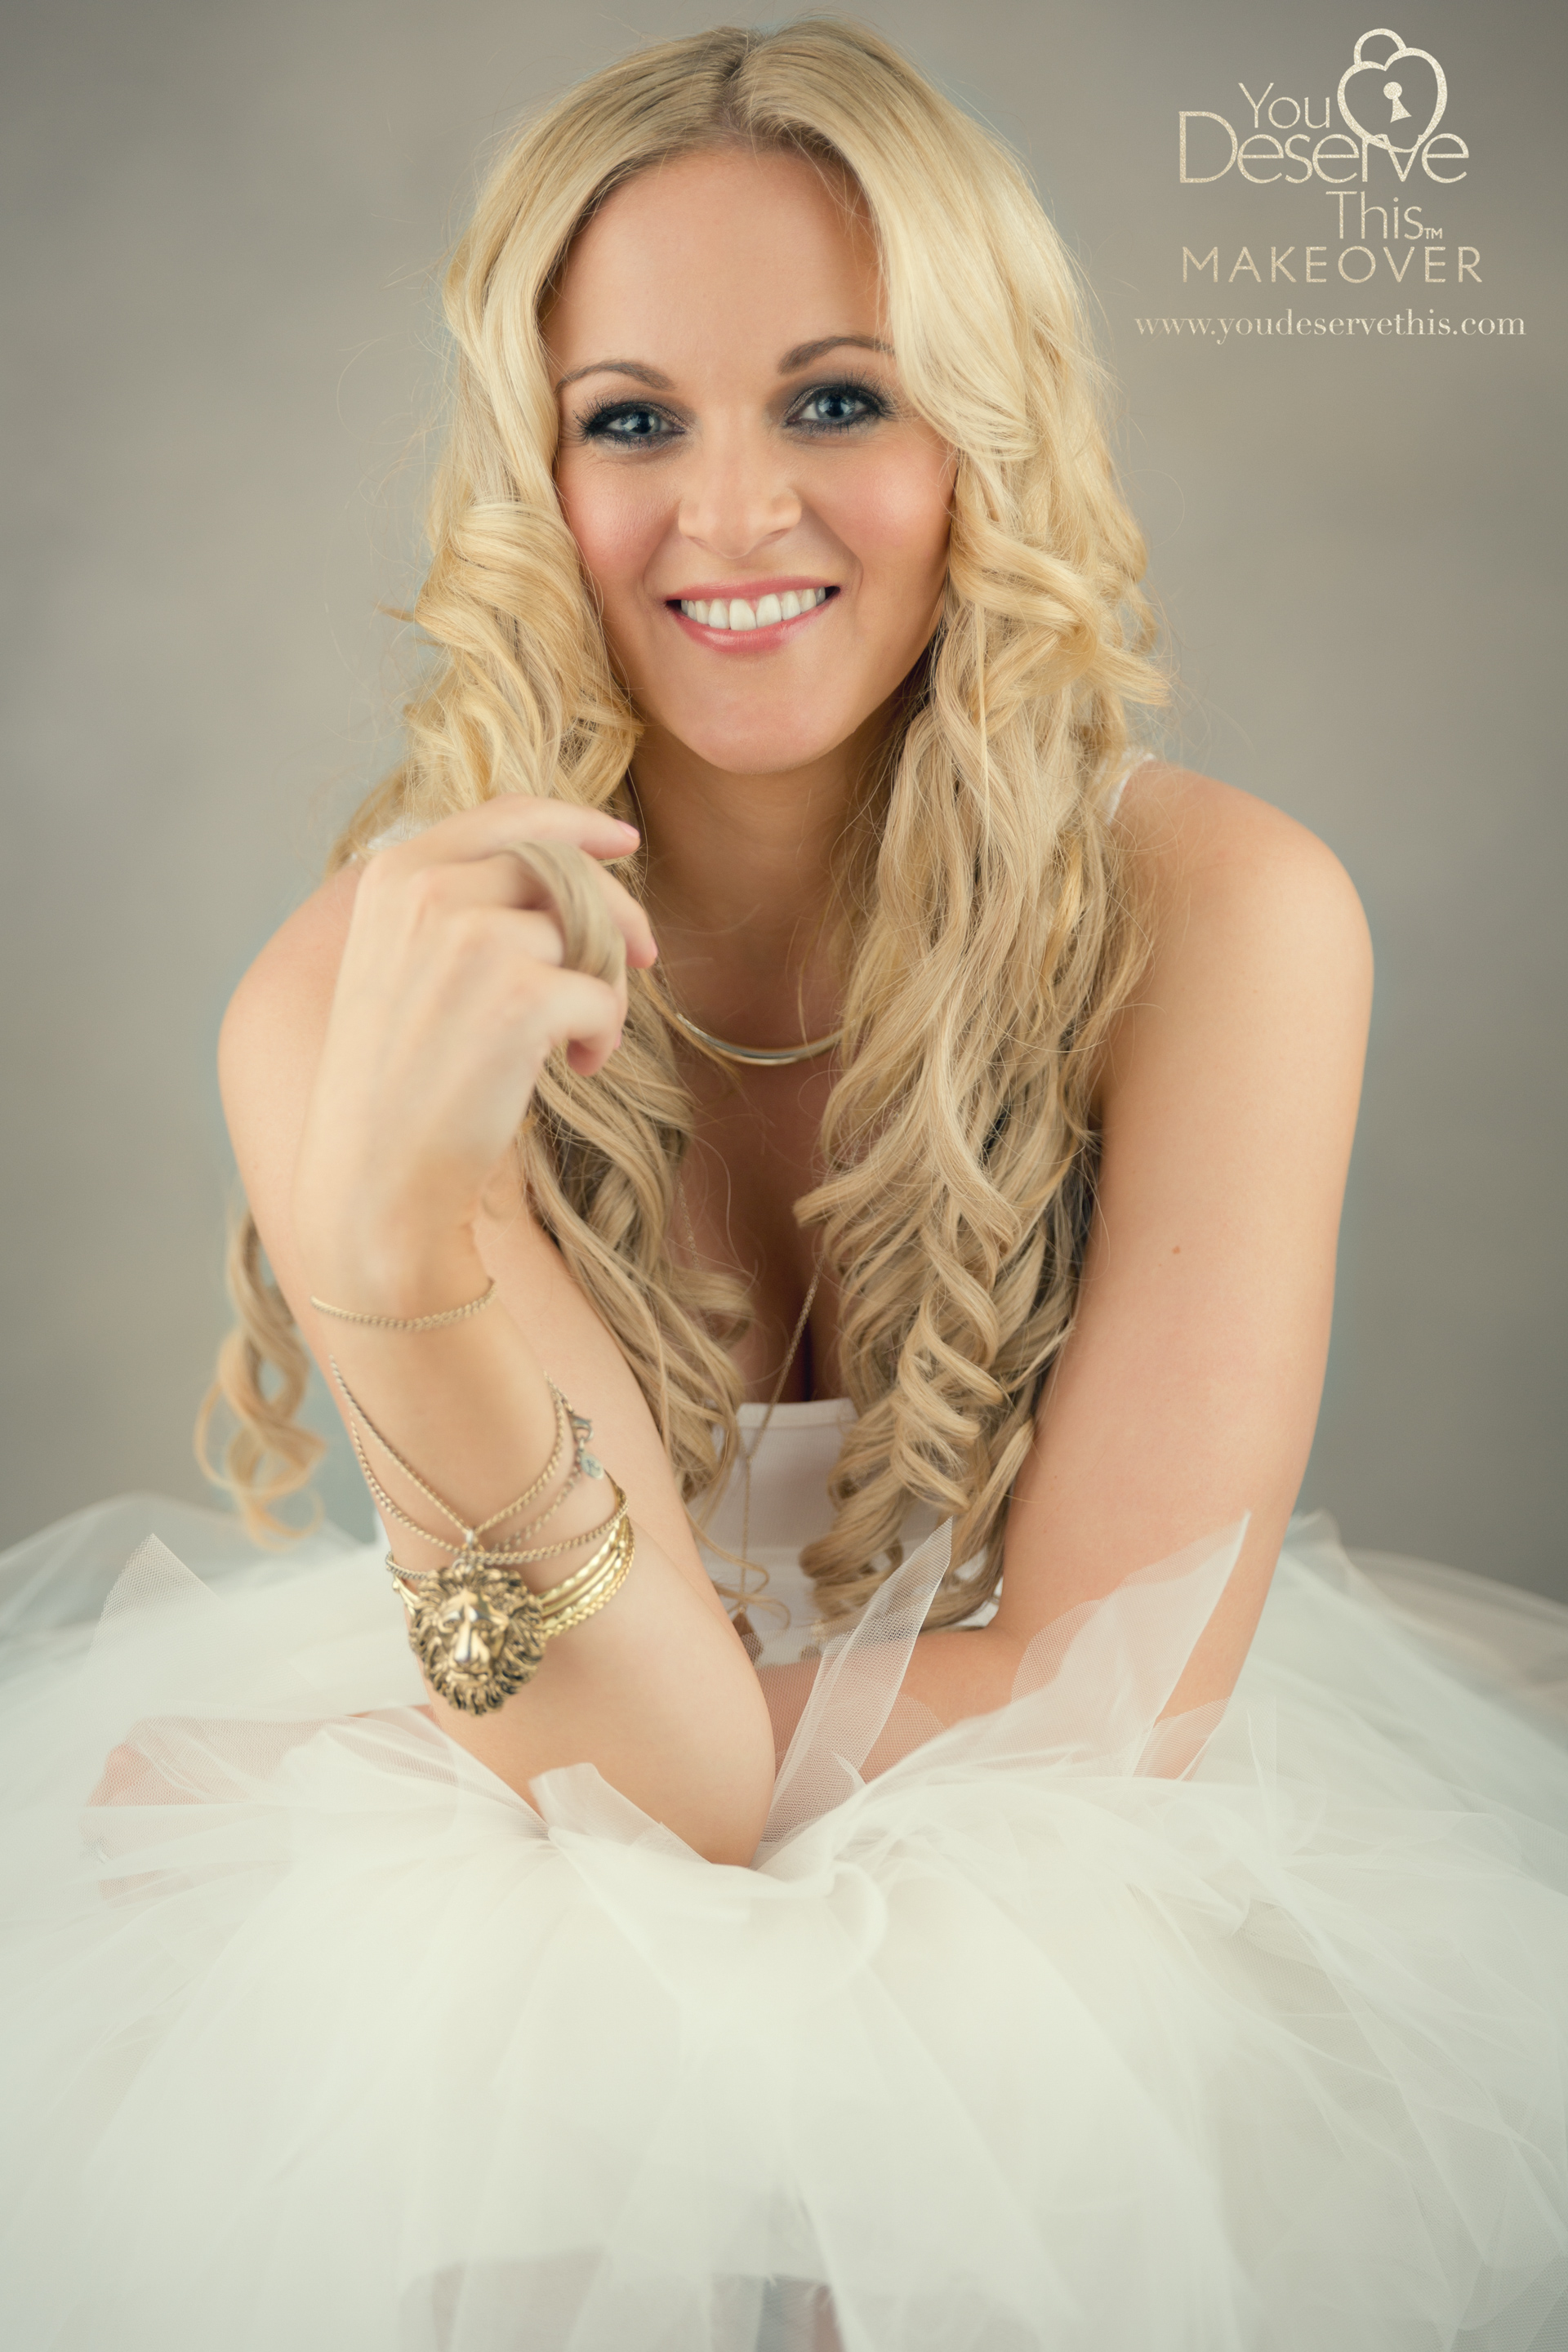 Beautiful jewellery adds glamour to your portraits.  www.youdeservethis.com